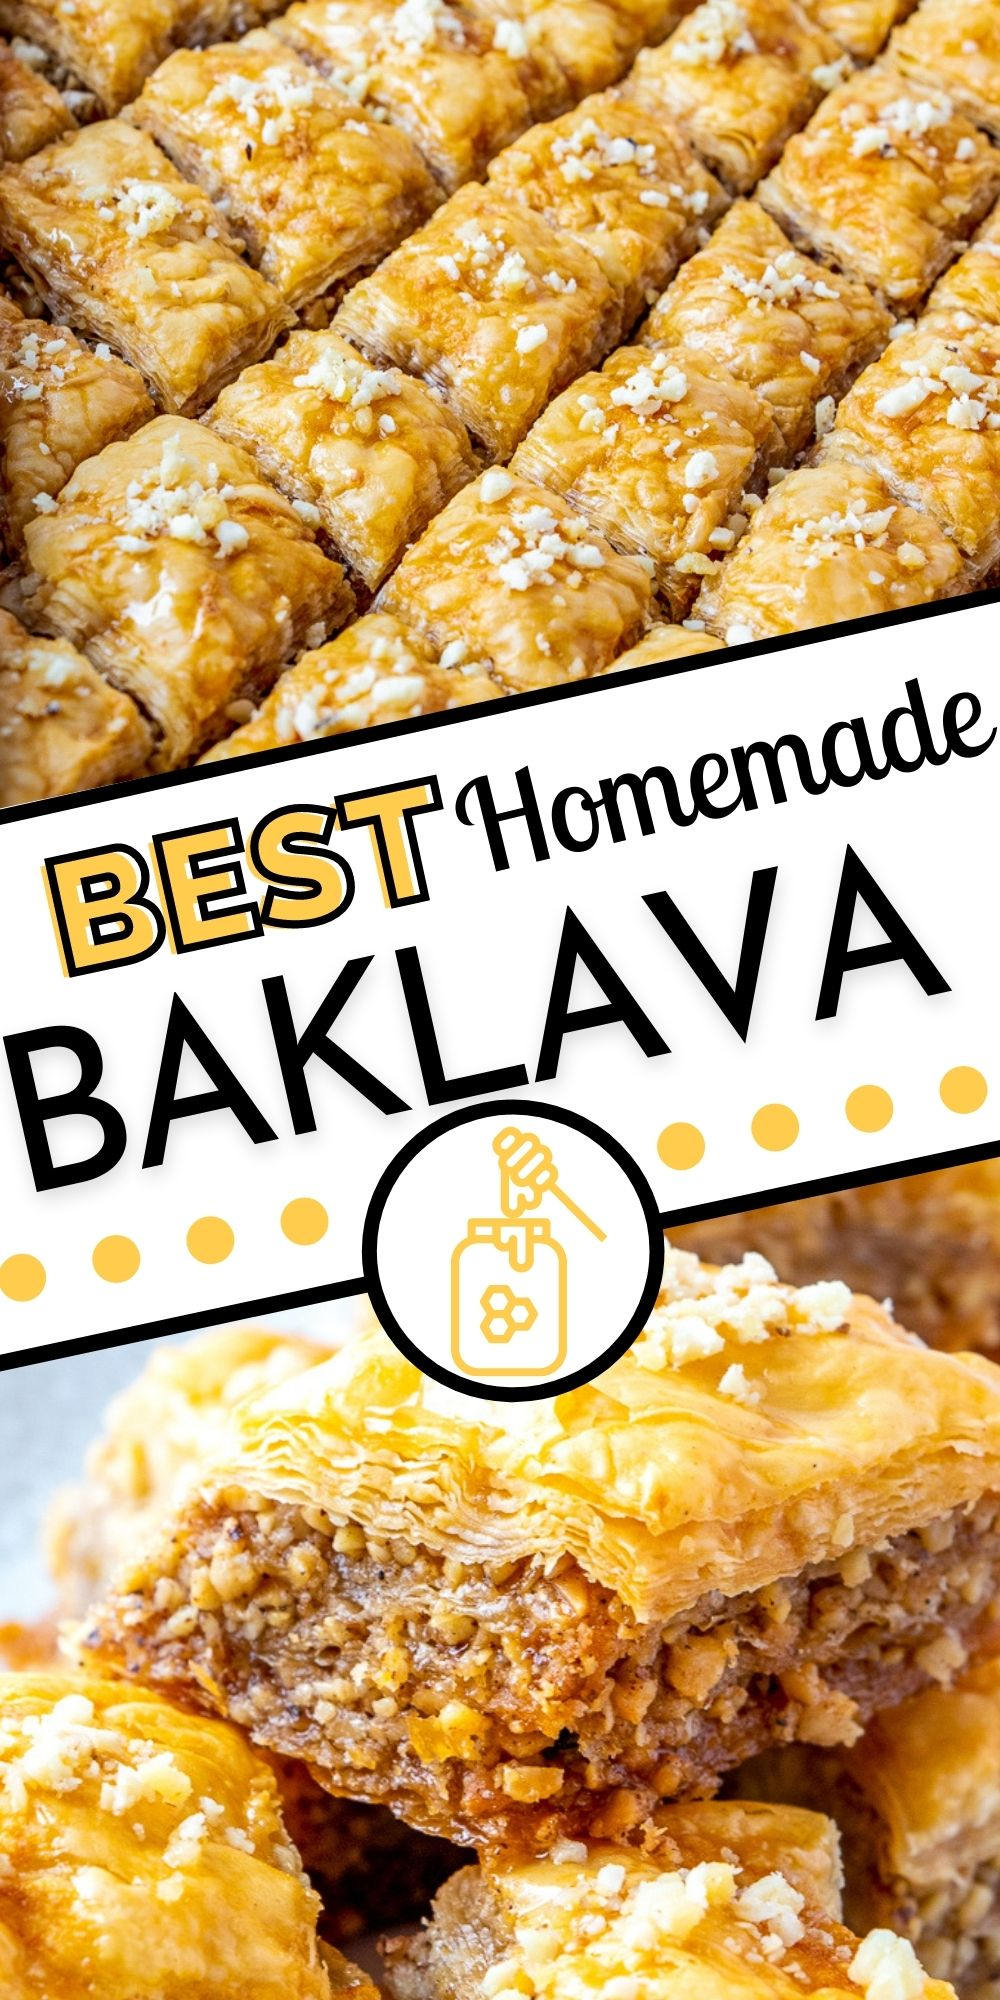 This bestBaklava recipe takes time, but it is SO worth it! It is perfect for family functions, parties, holidays, or gifting! via @foodfolksandfun